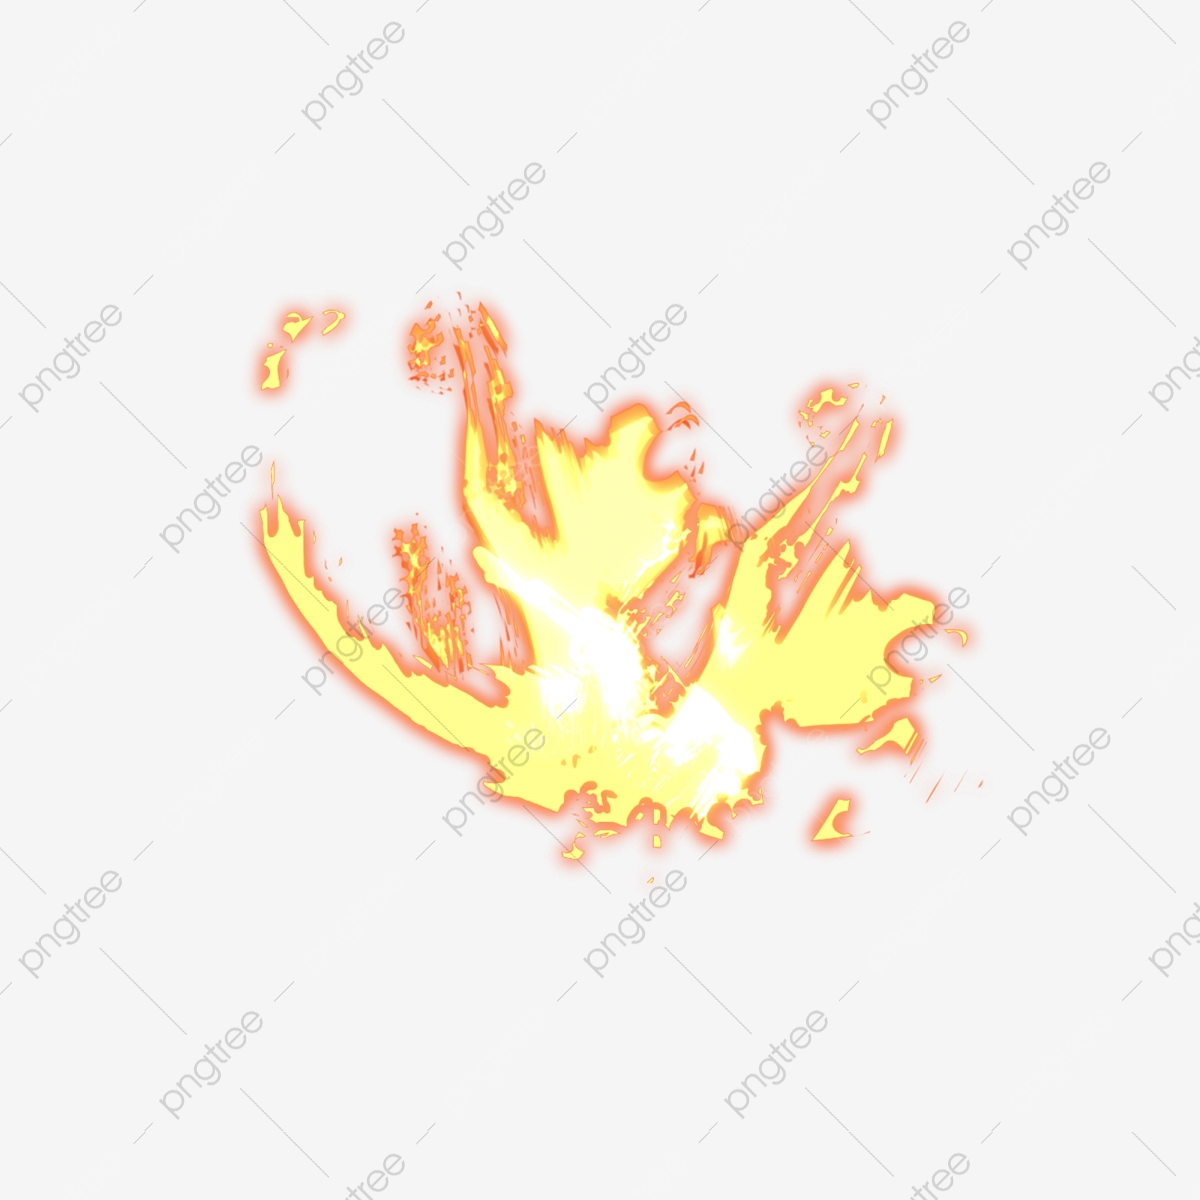 Flame Skull Man And Sound, Flame, Fire, Spark PNG